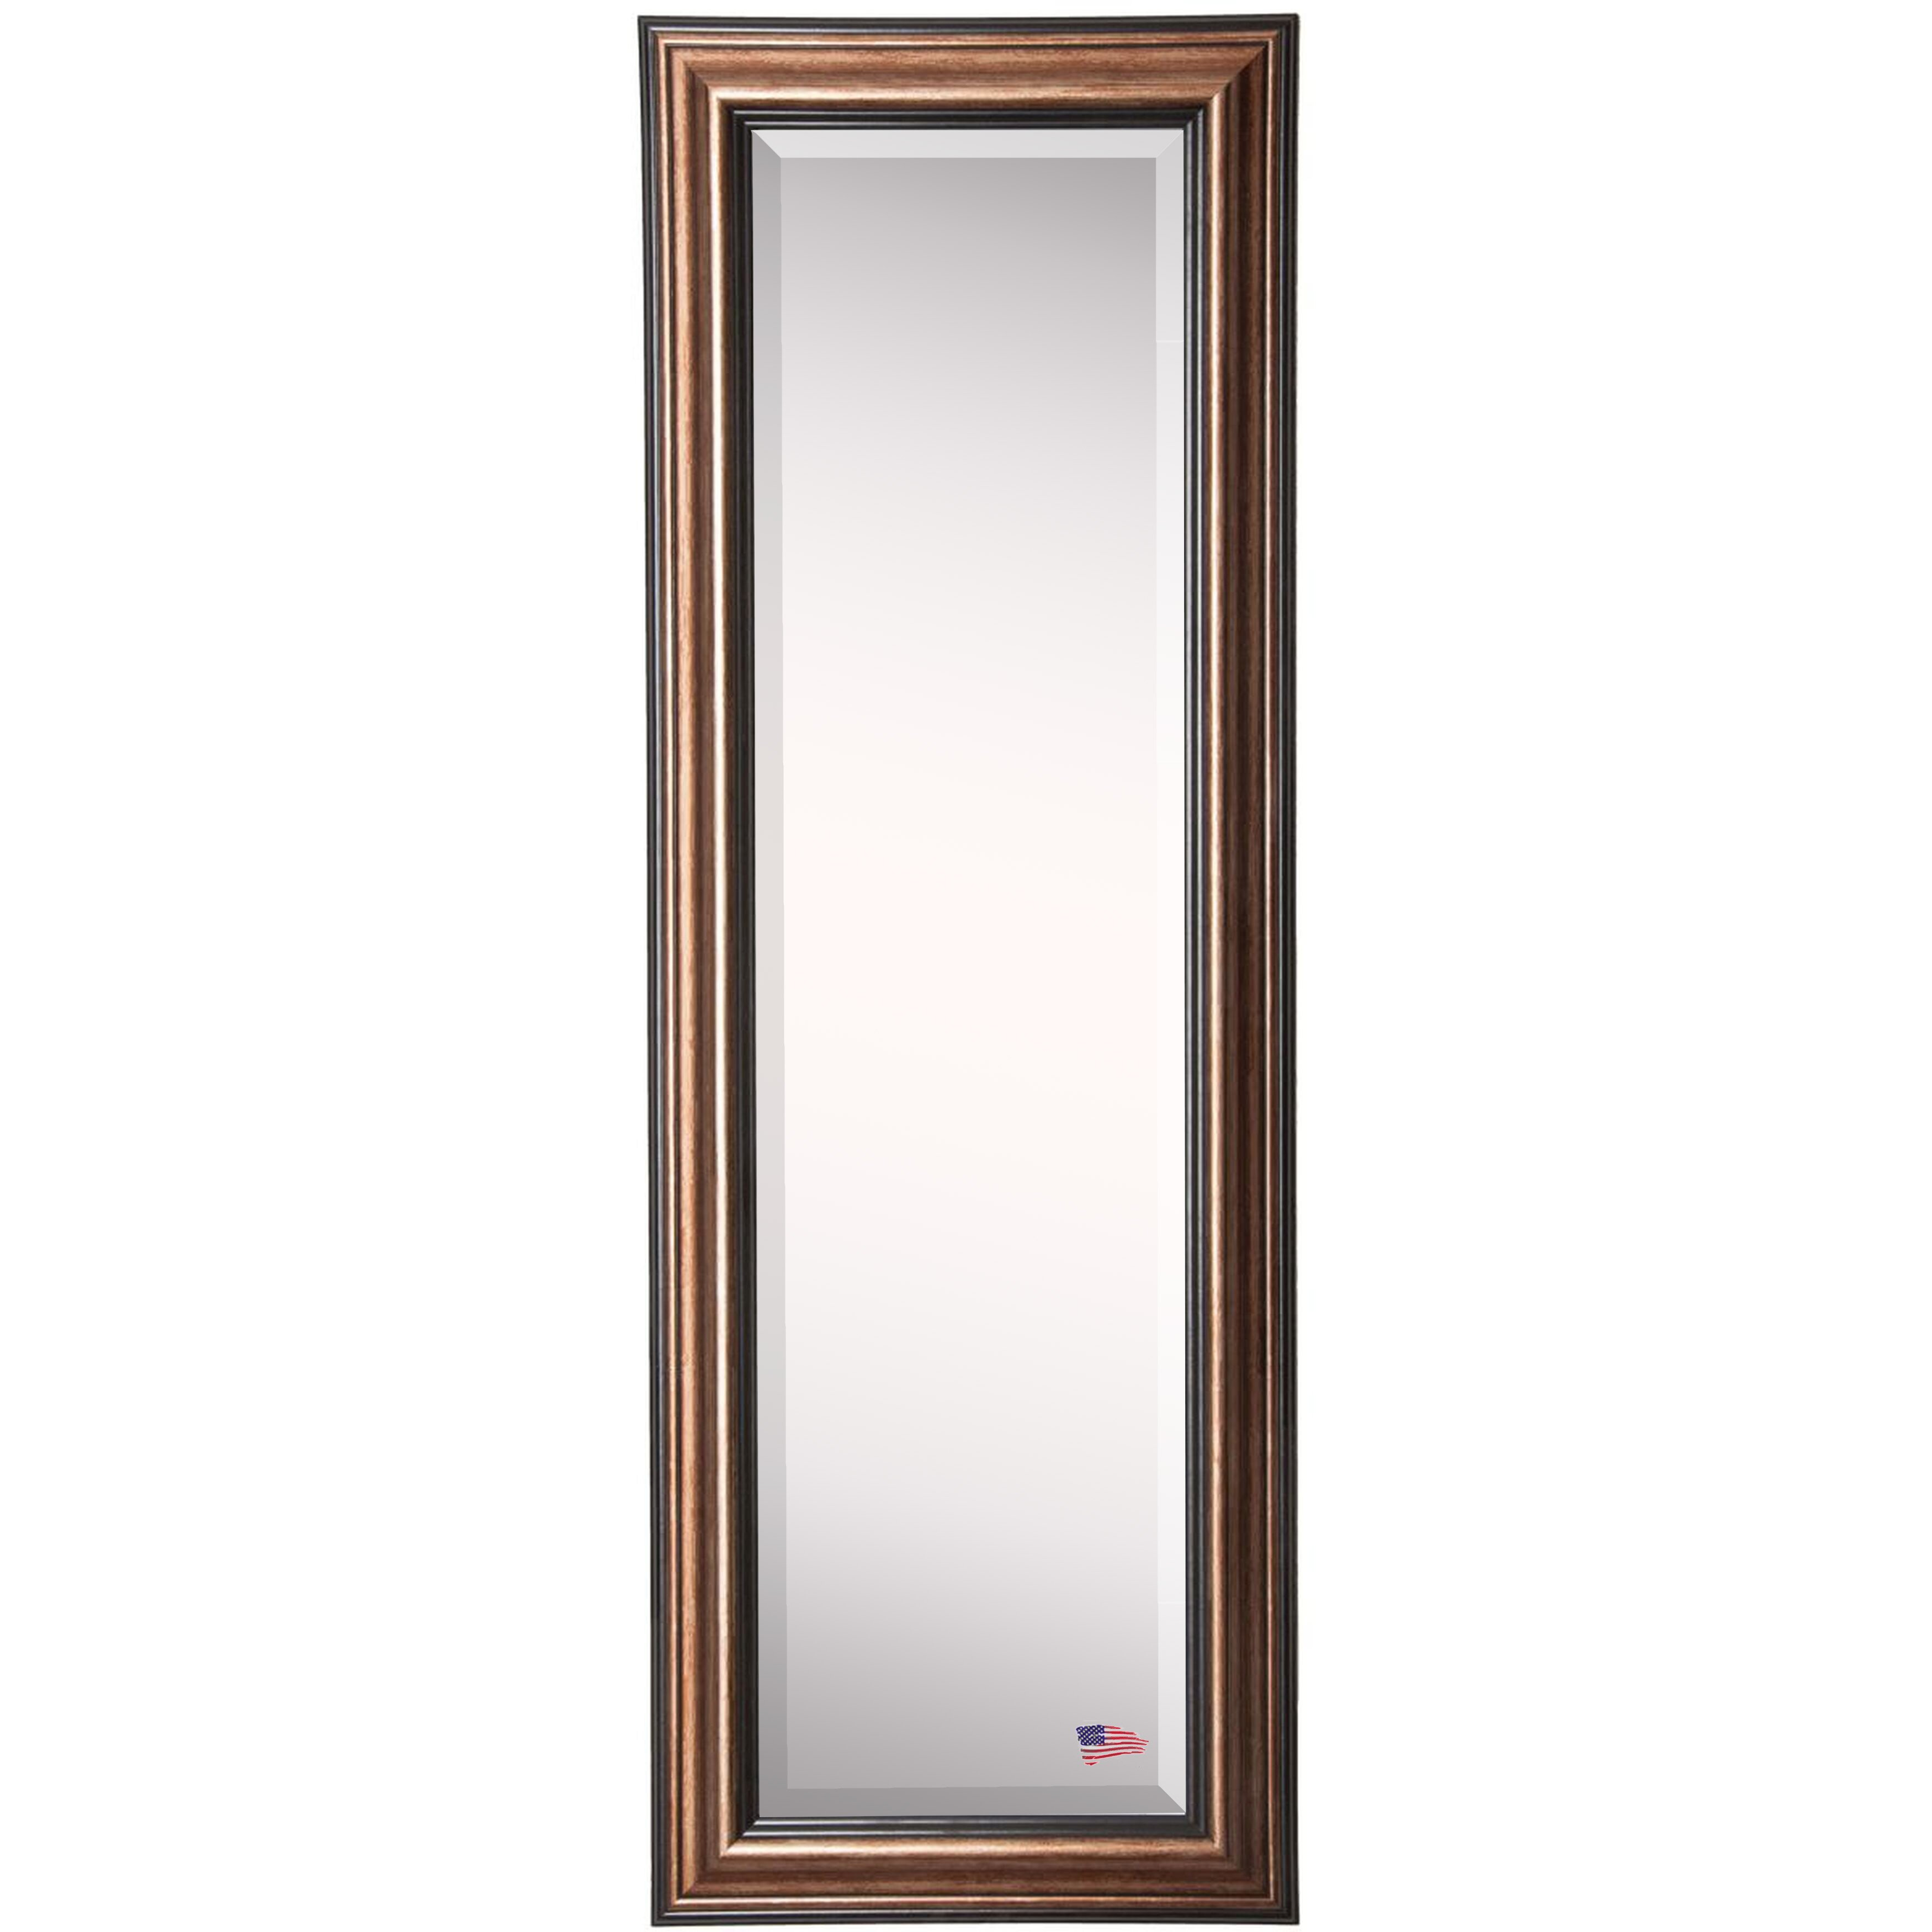 Rayne mirrors jovie jane traditional bronze full length for Traditional mirror